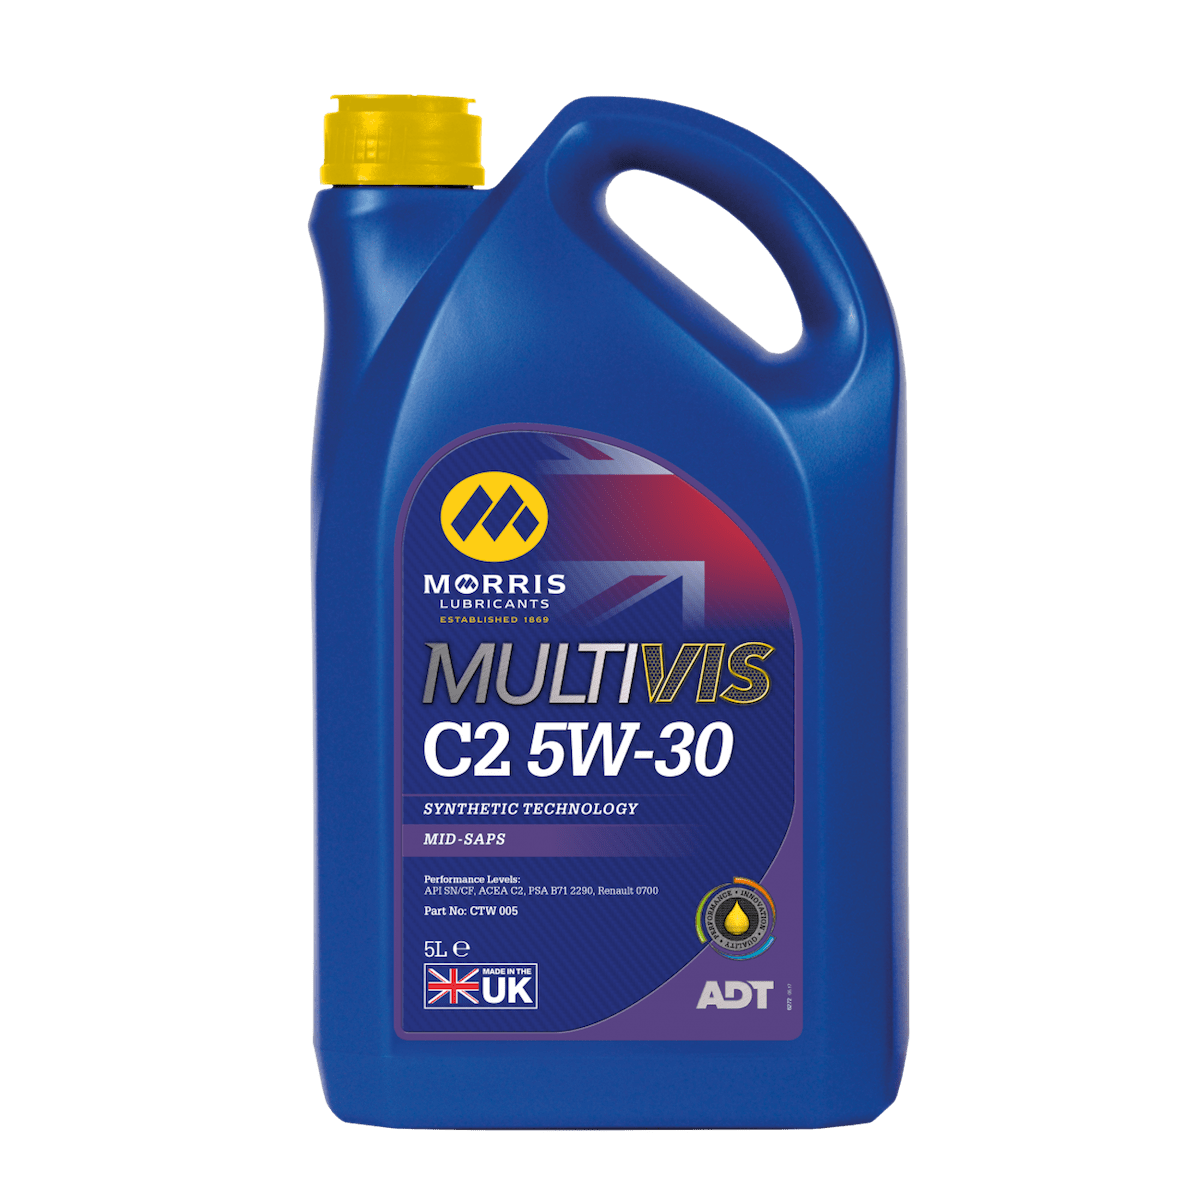 Multivis ADT C2 5W-30 (Previously Multilife C-TWO 5W-30)